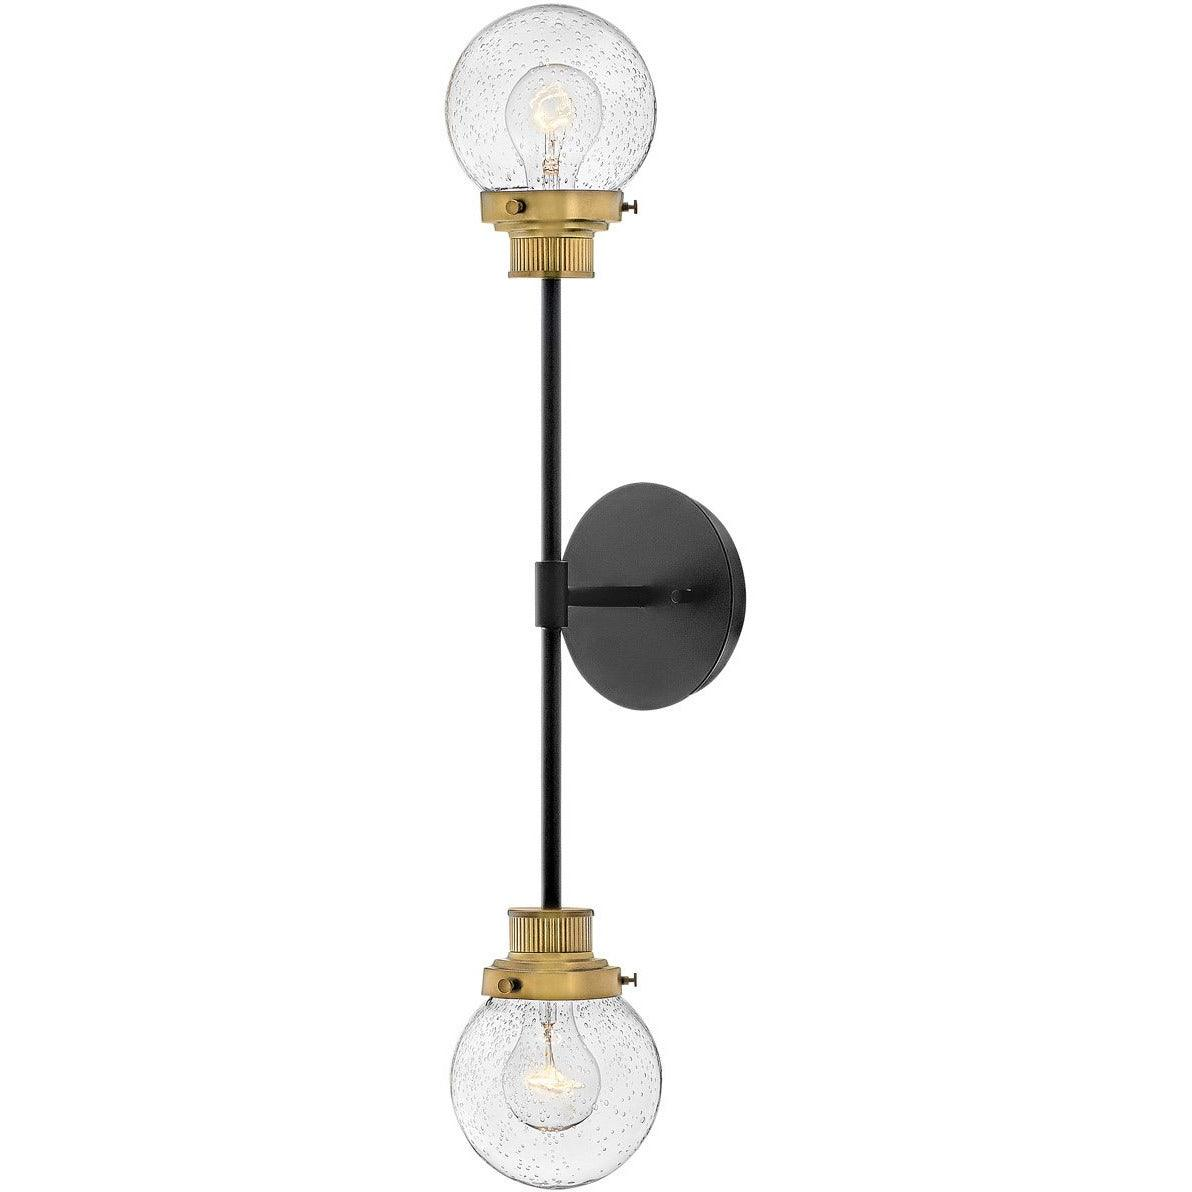 Hinkley Canada - 40692BK - Two Light Wall Sconce - Poppy - Black